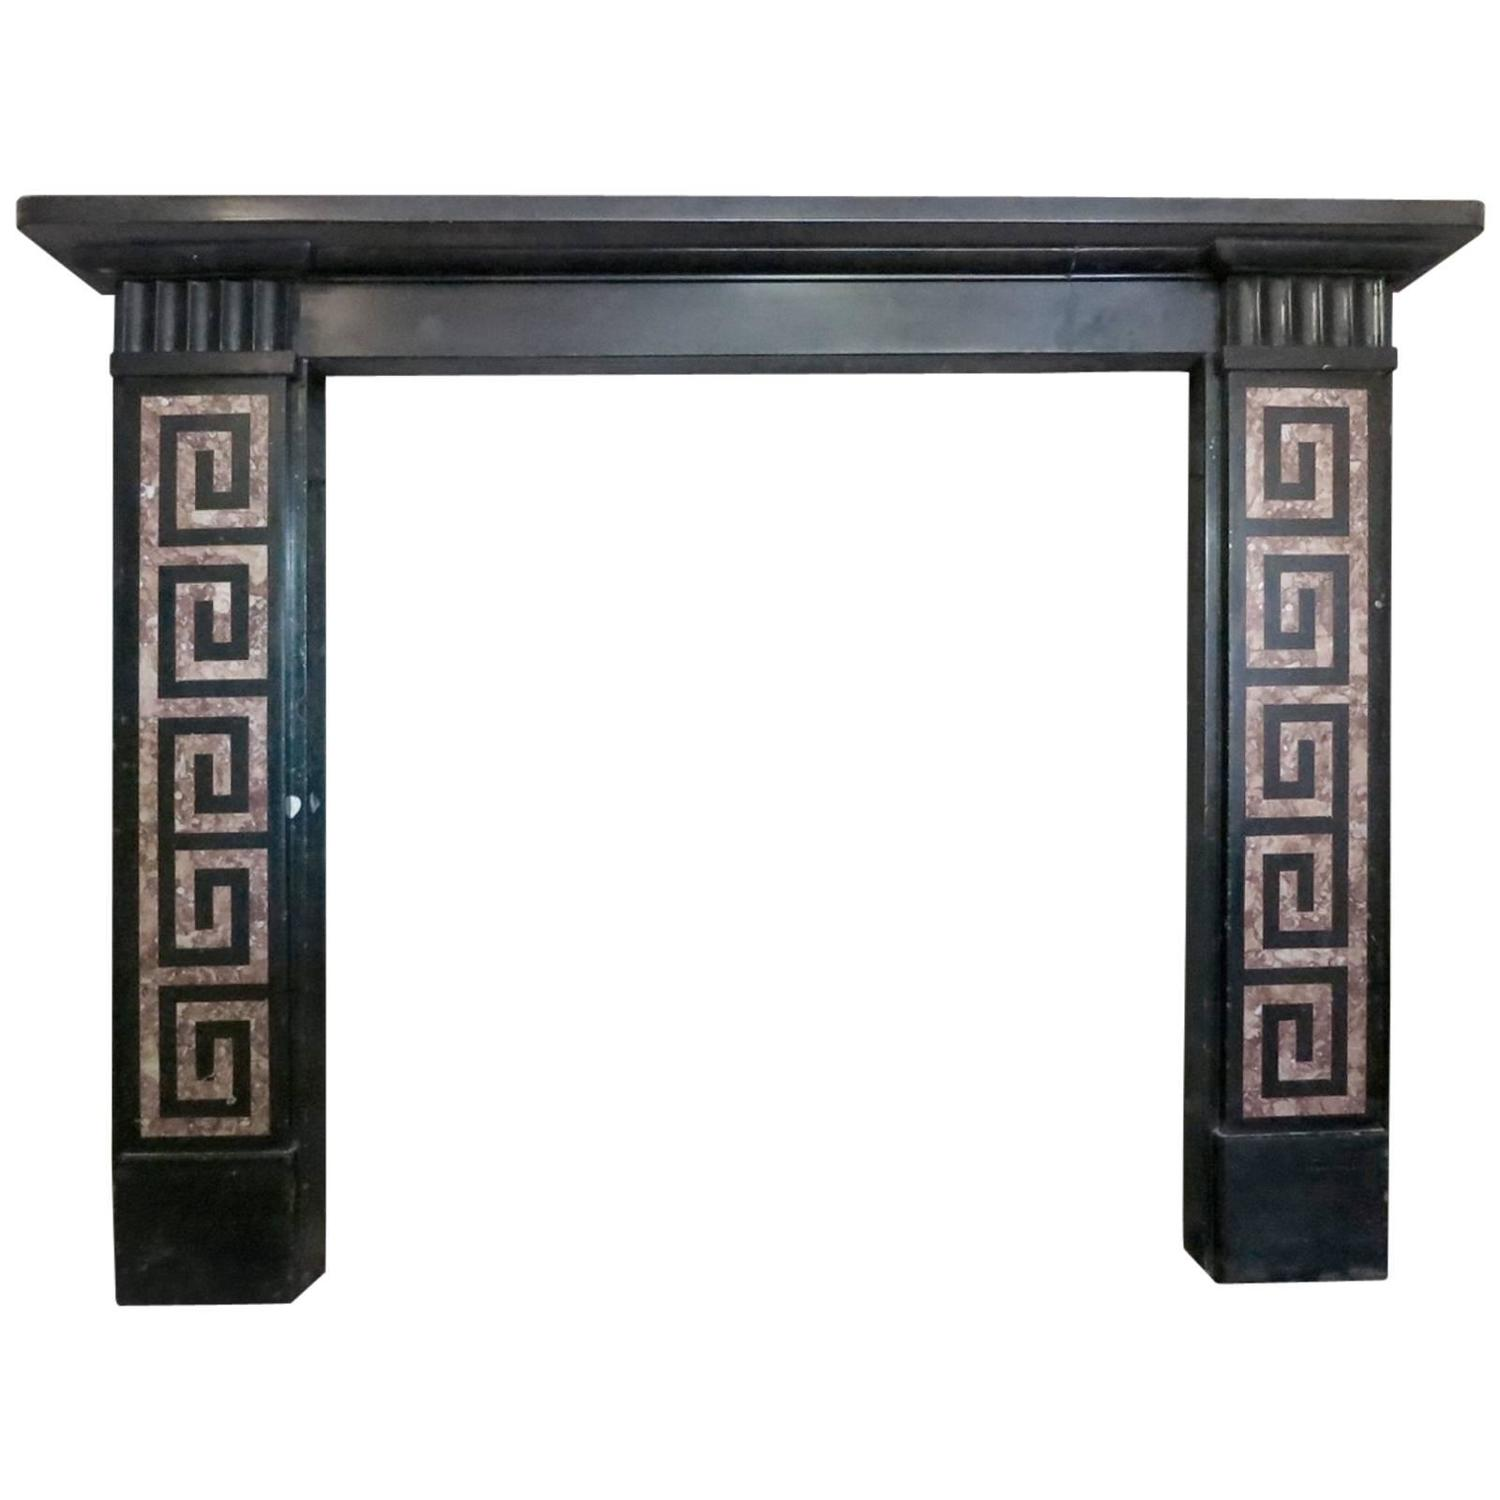 American Gothic Revival Furniture Characteristics: Early 19th Century Greek Revival Kilkenny Marble Fireplace